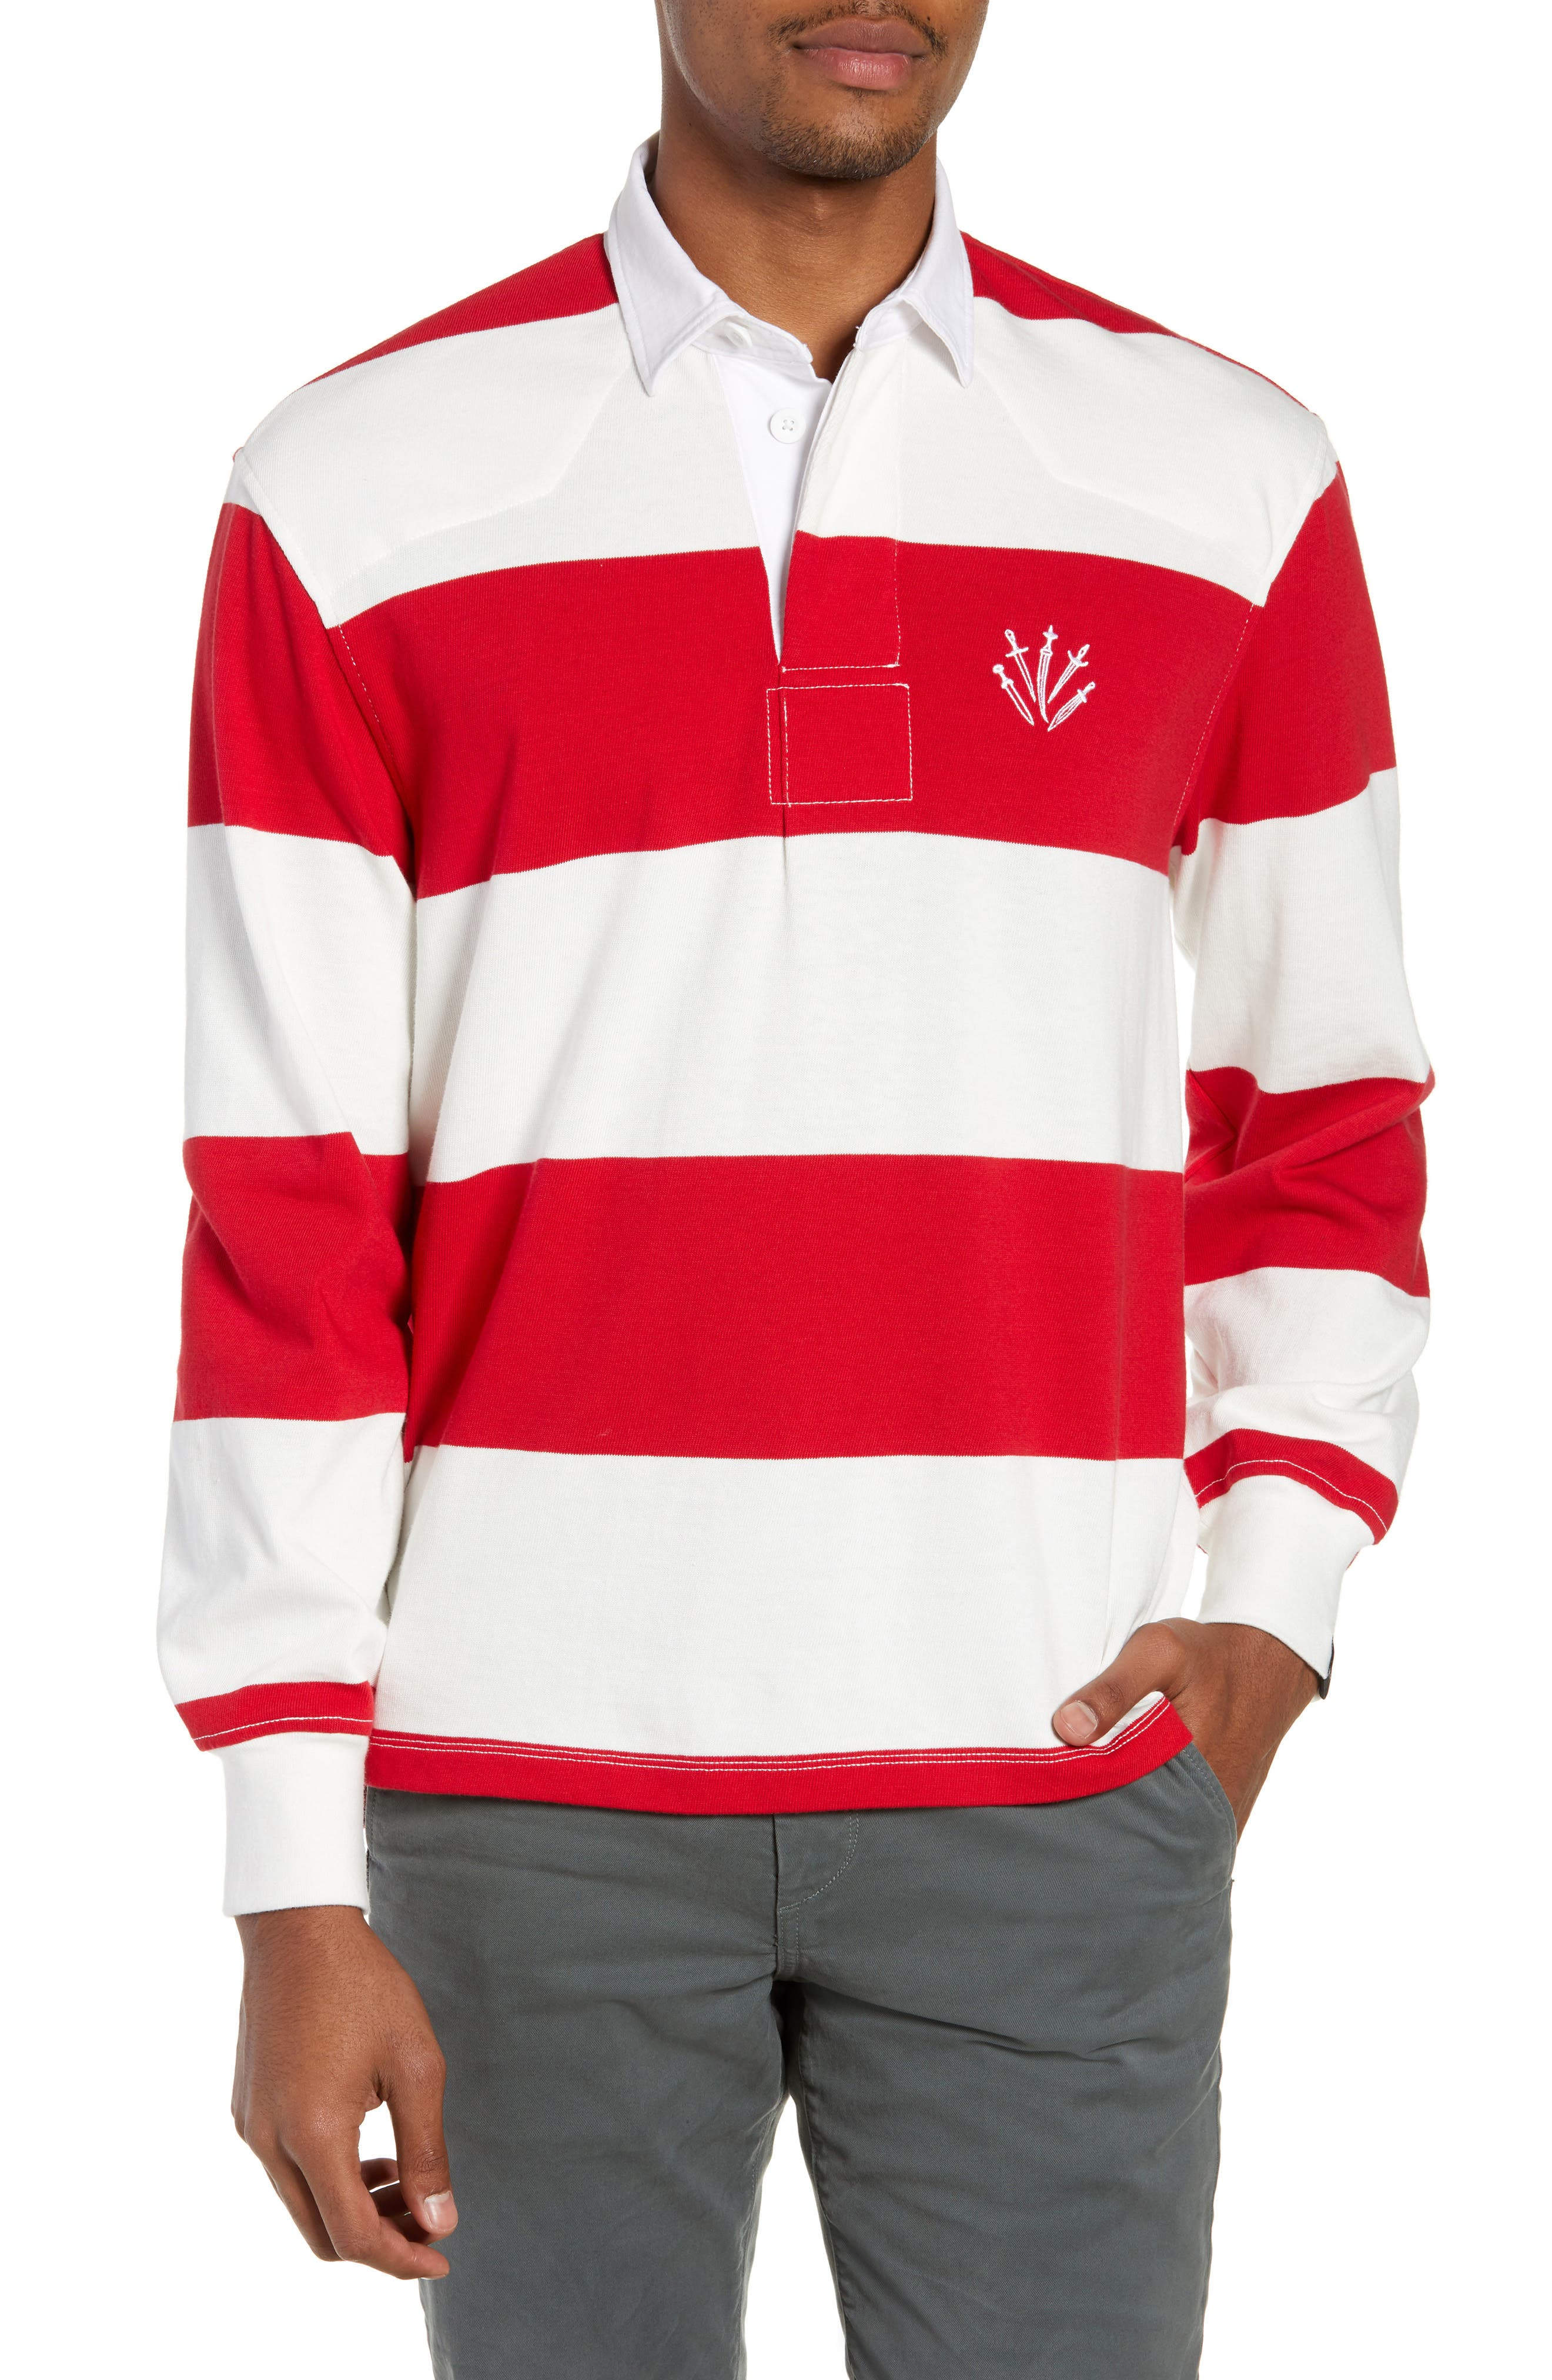 Regular Fit Rugby Shirt,                             Main thumbnail 1, color,                             RED/ IVORY